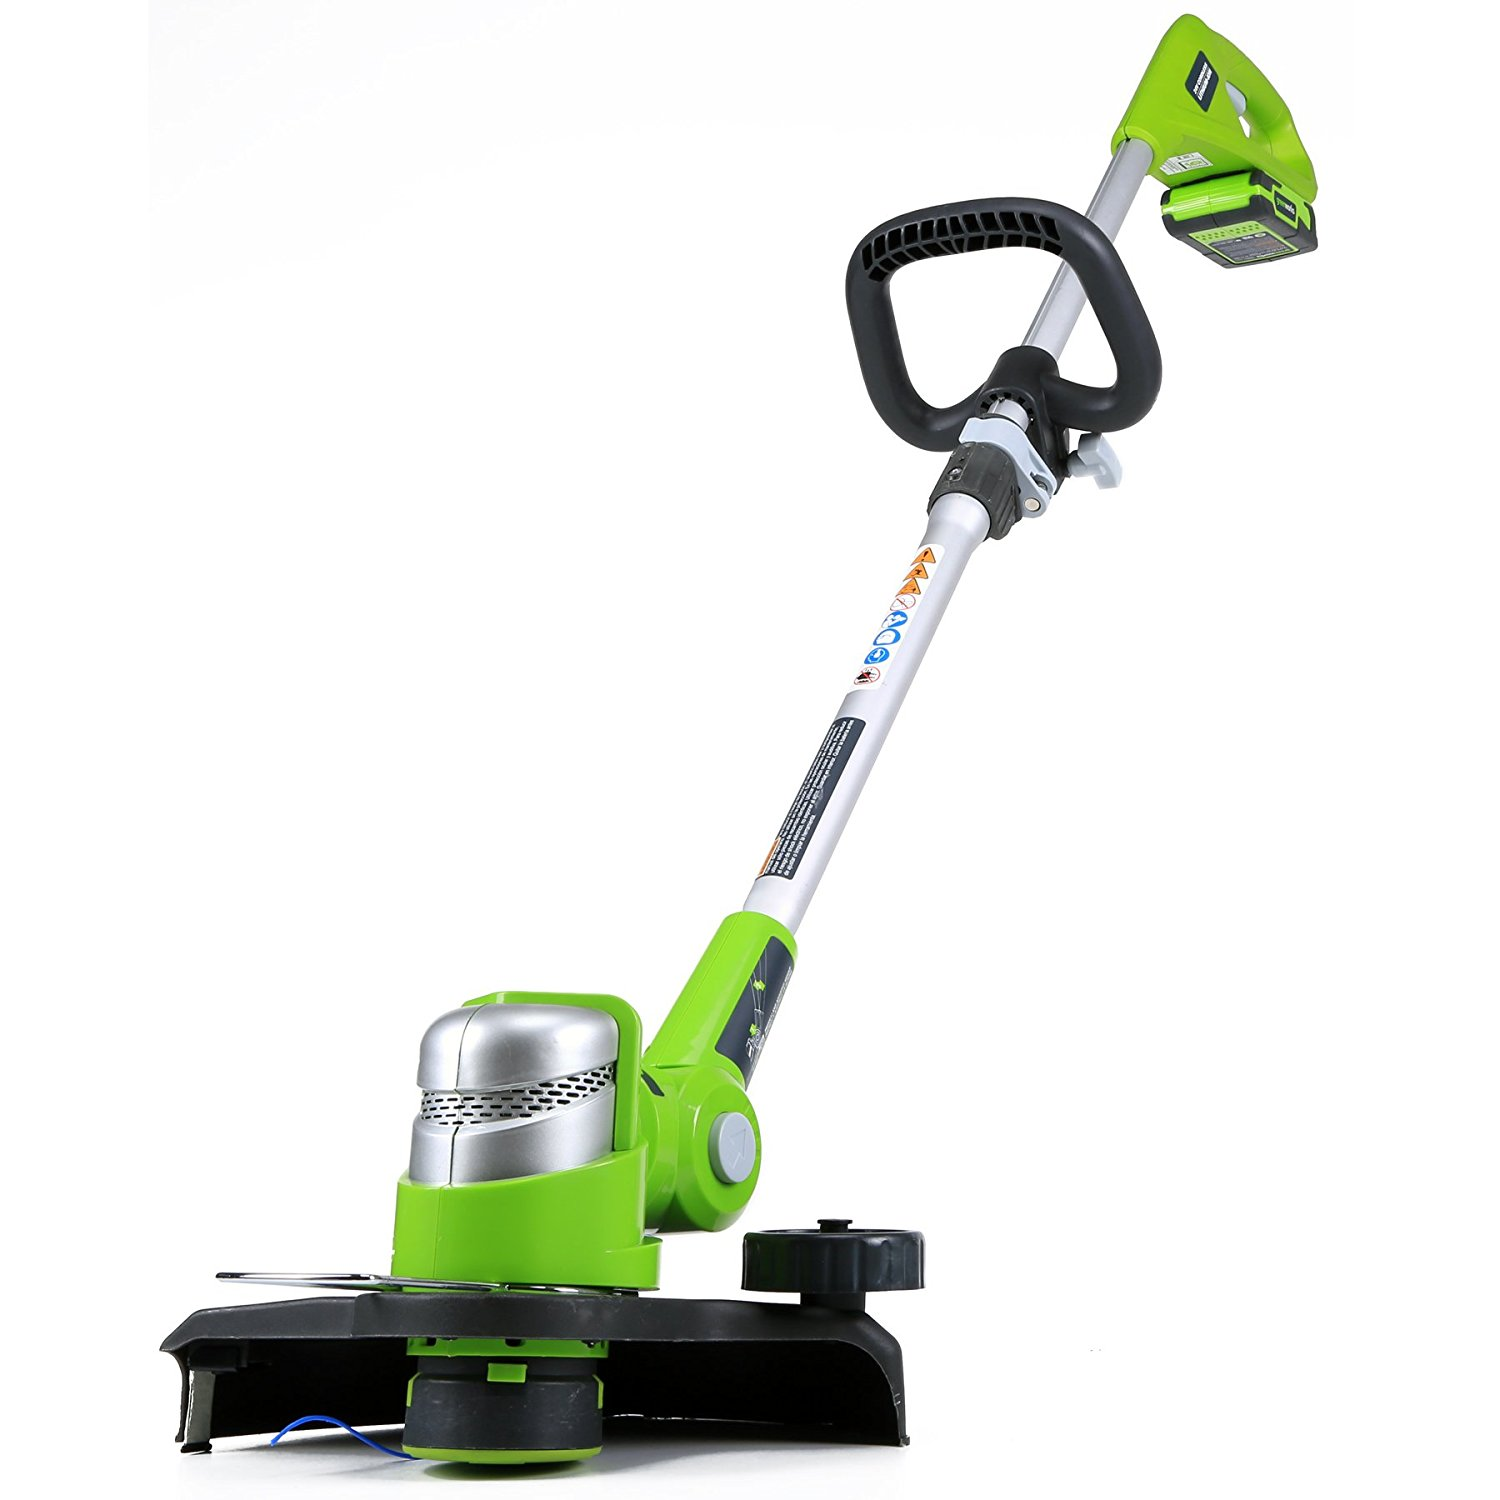 GreenWorks 21342 G-24 24V 12-Inch Cordless String Trimmer